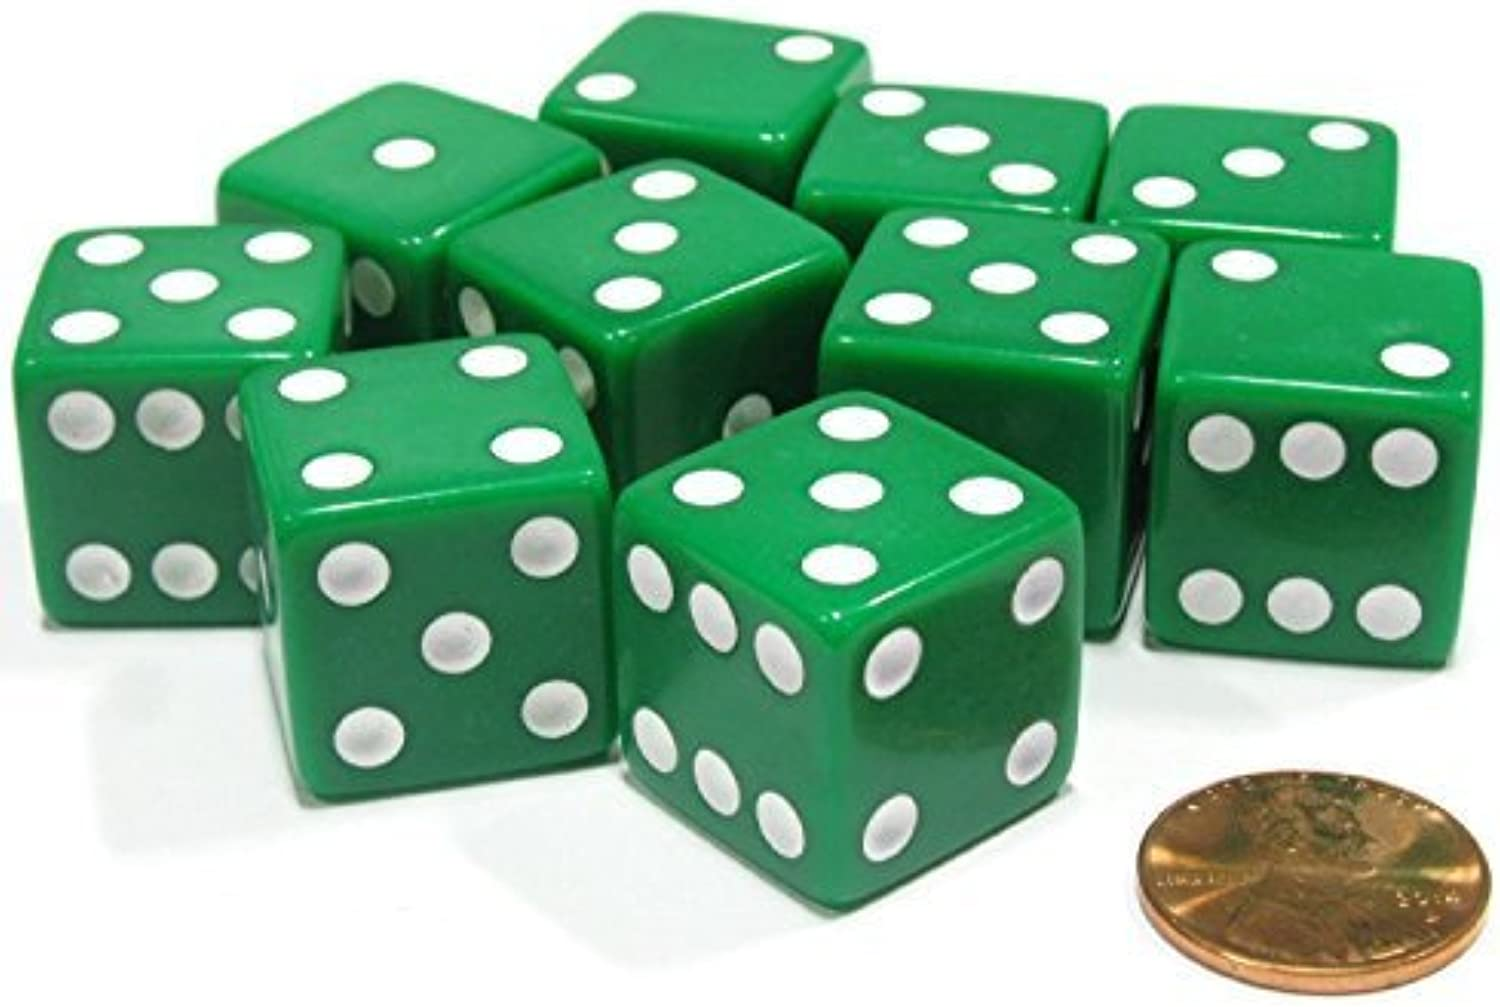 Set of 10 Large Six Sided Square Opaque 19mm D6 Dice  Green with White Pip Die by Koplow Games